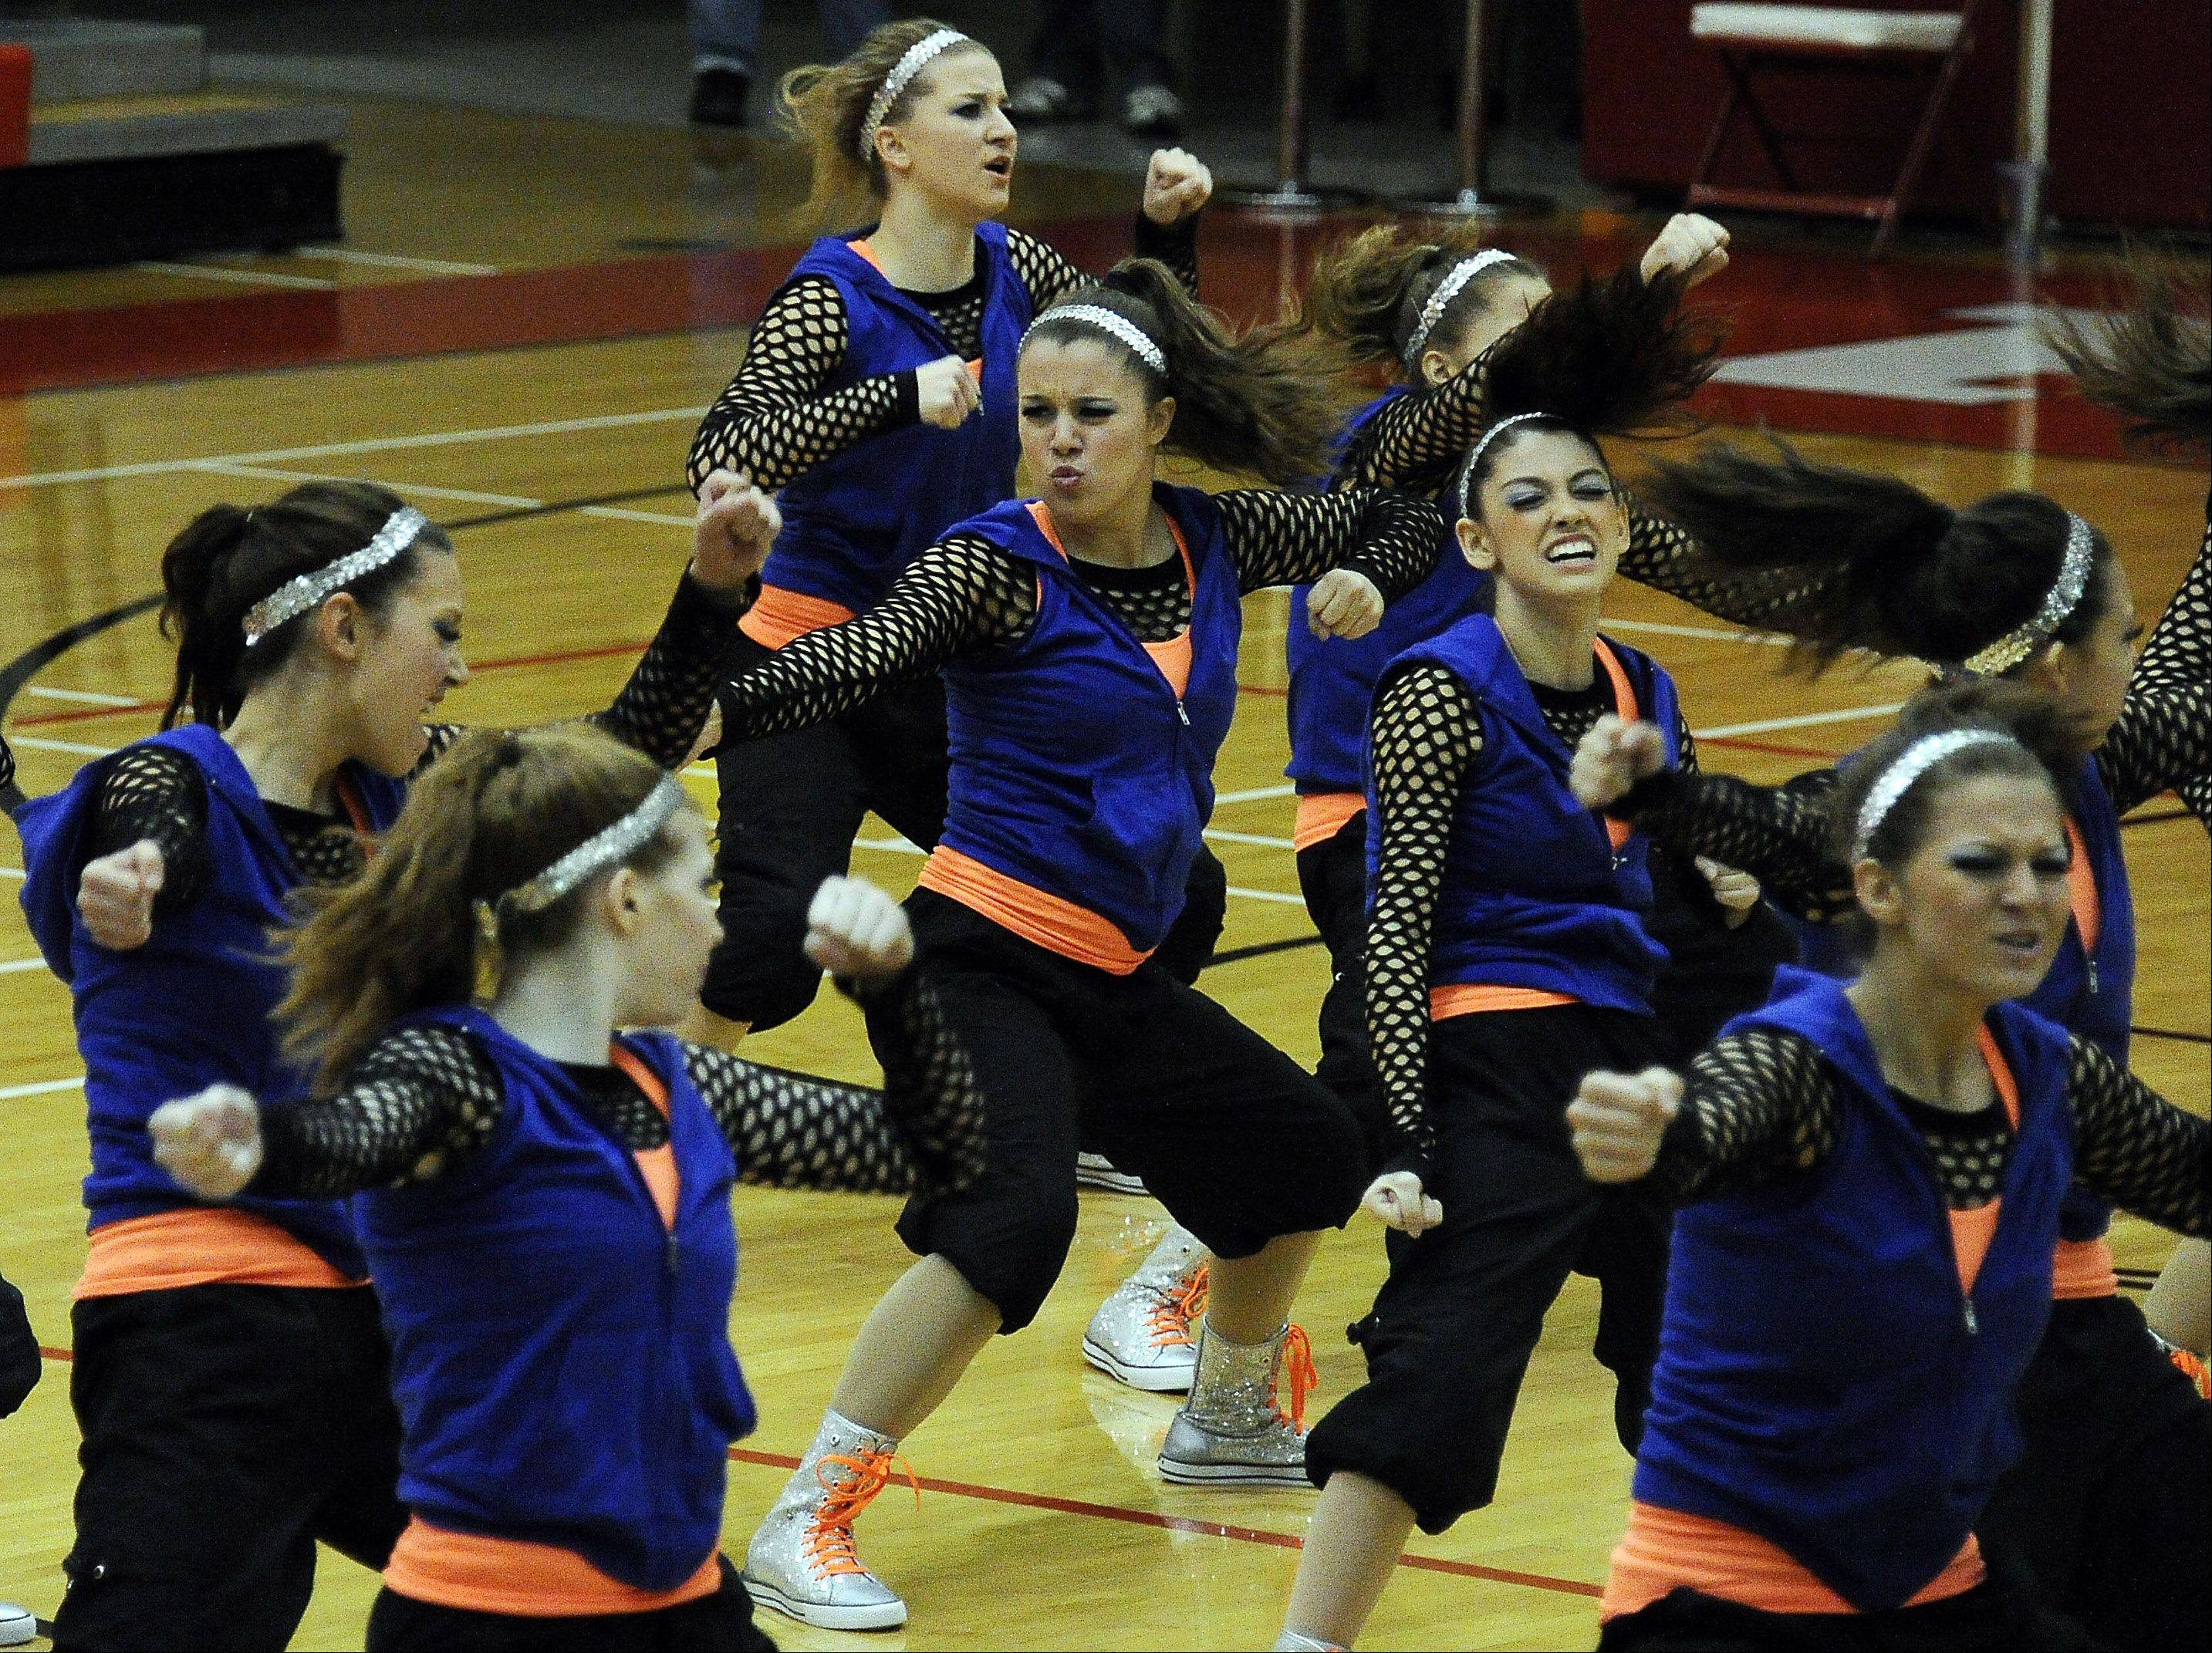 Dancing in the (2A) division are members of Fenton High School dance squad with Stephanie Bennett (center) leading the way in the 1st annual Sectional Competition at Palatine High School on Saturday.